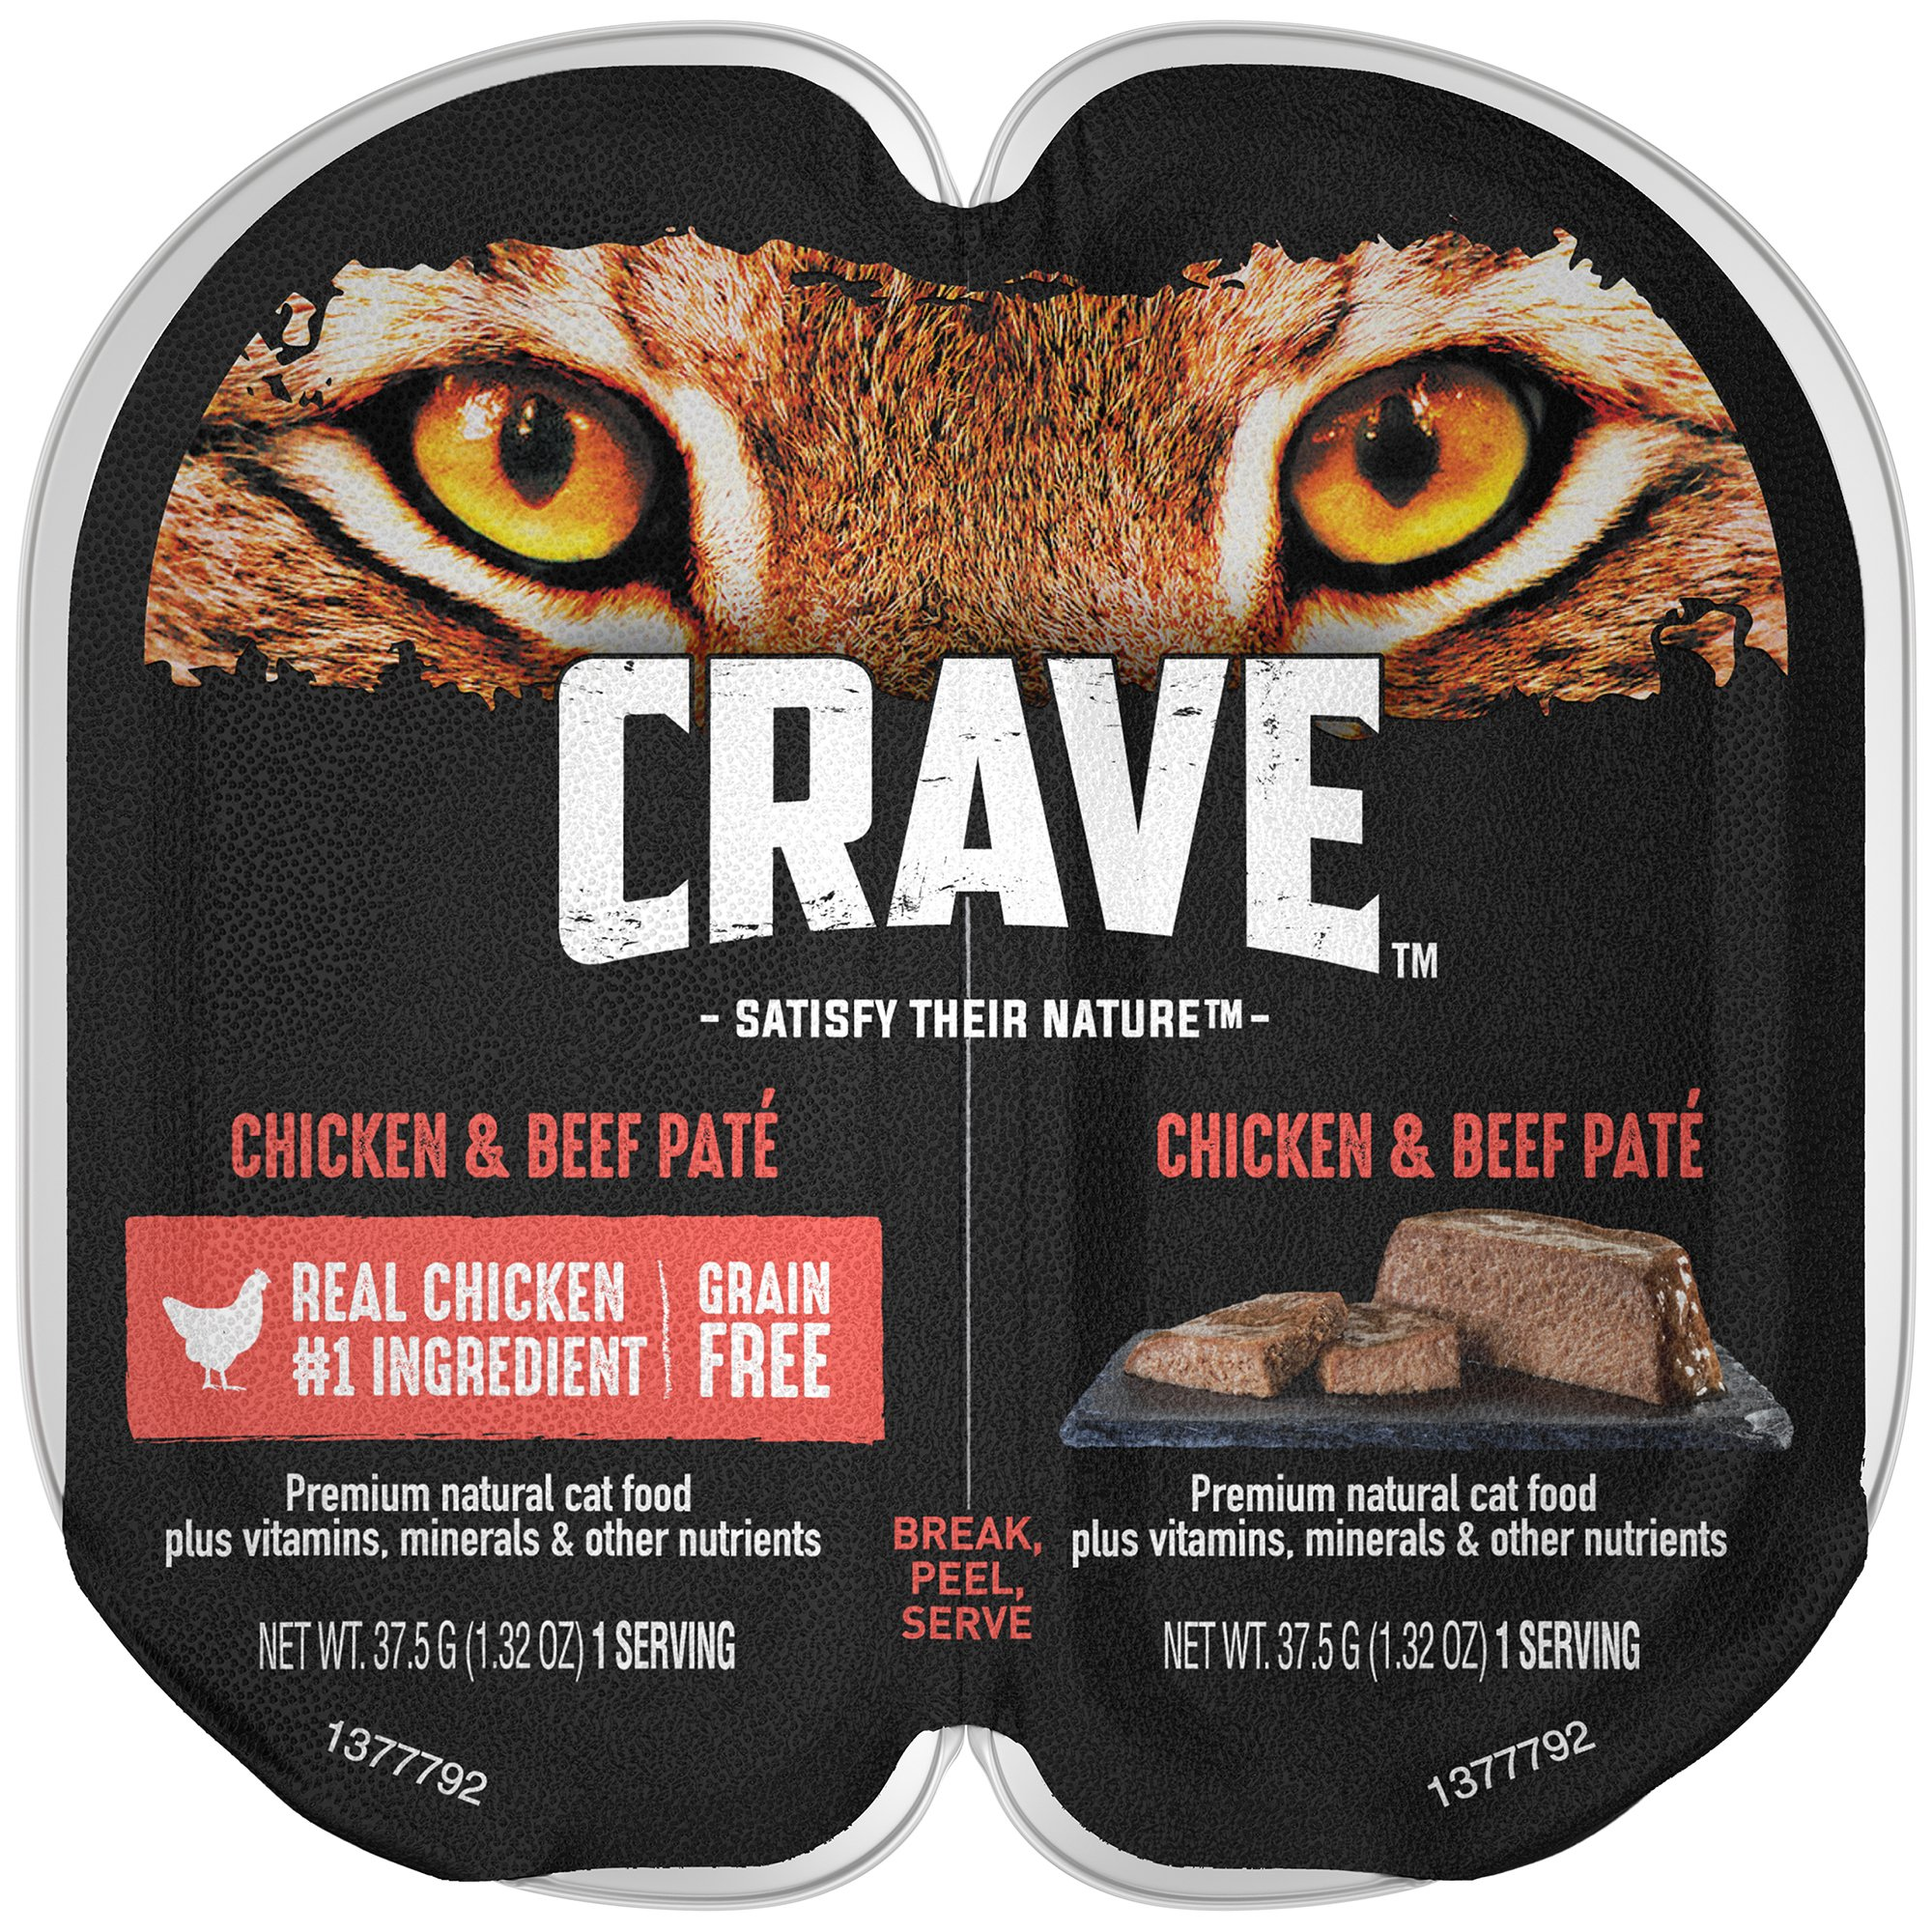 Crave Grain Free Adult High Protein Wet Cat Food Paté Chicken & Beef, (24) 2.6 Oz. Twin-Pack Trays by CRAVE